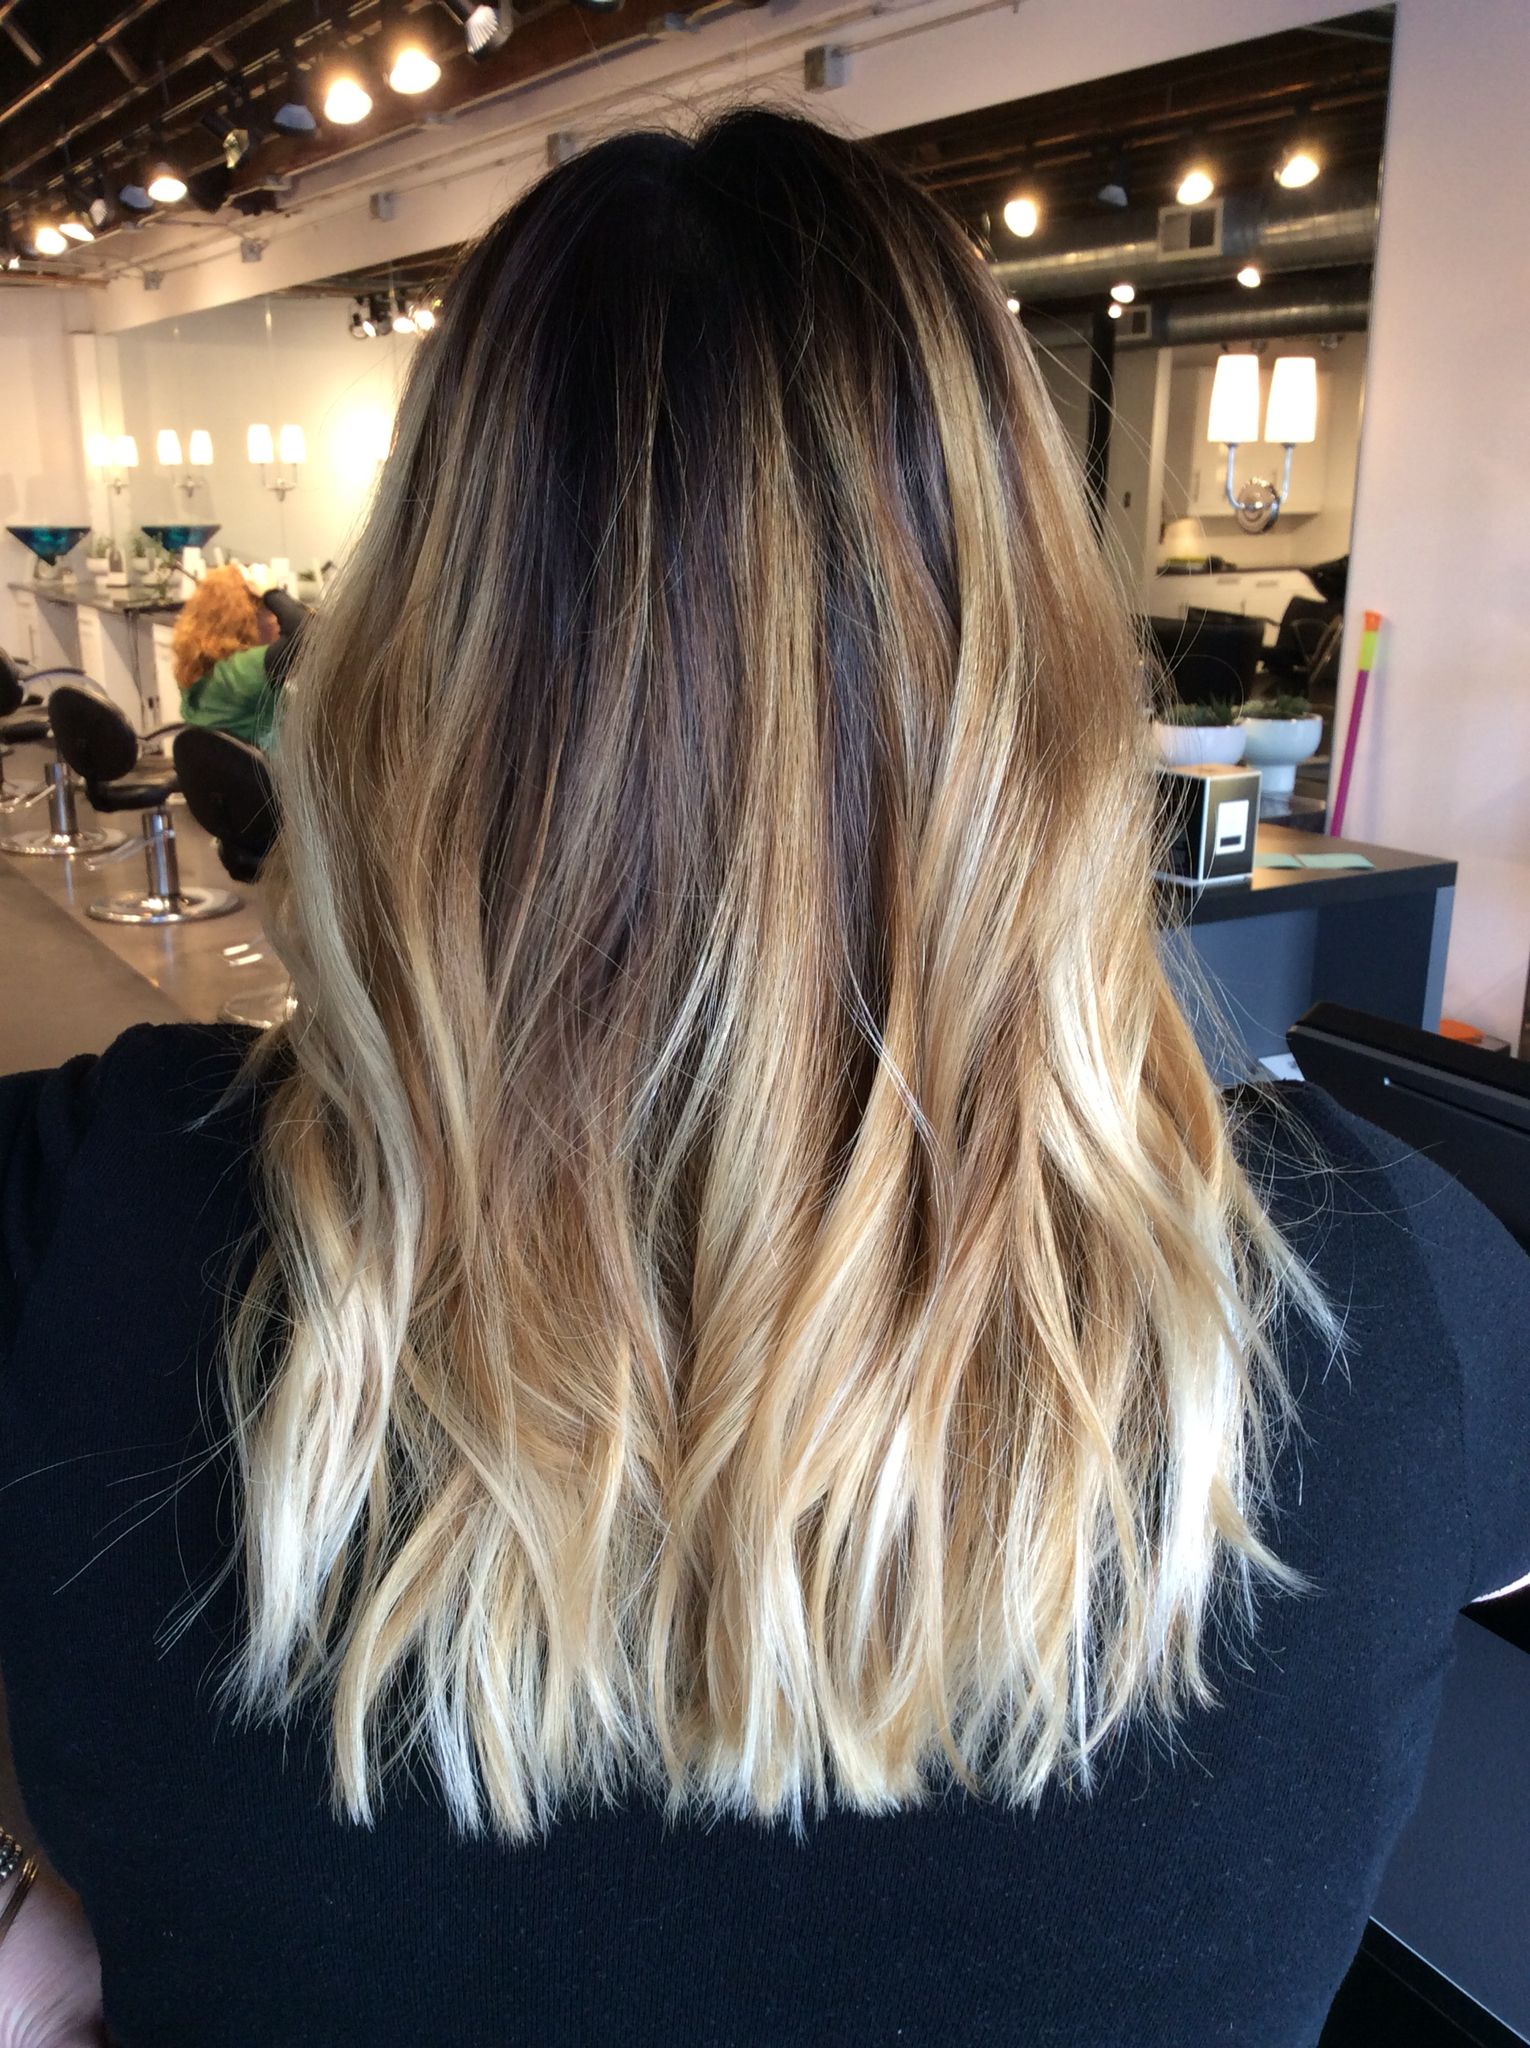 Ombré balayage with dark brown root. Warm blonde balayage